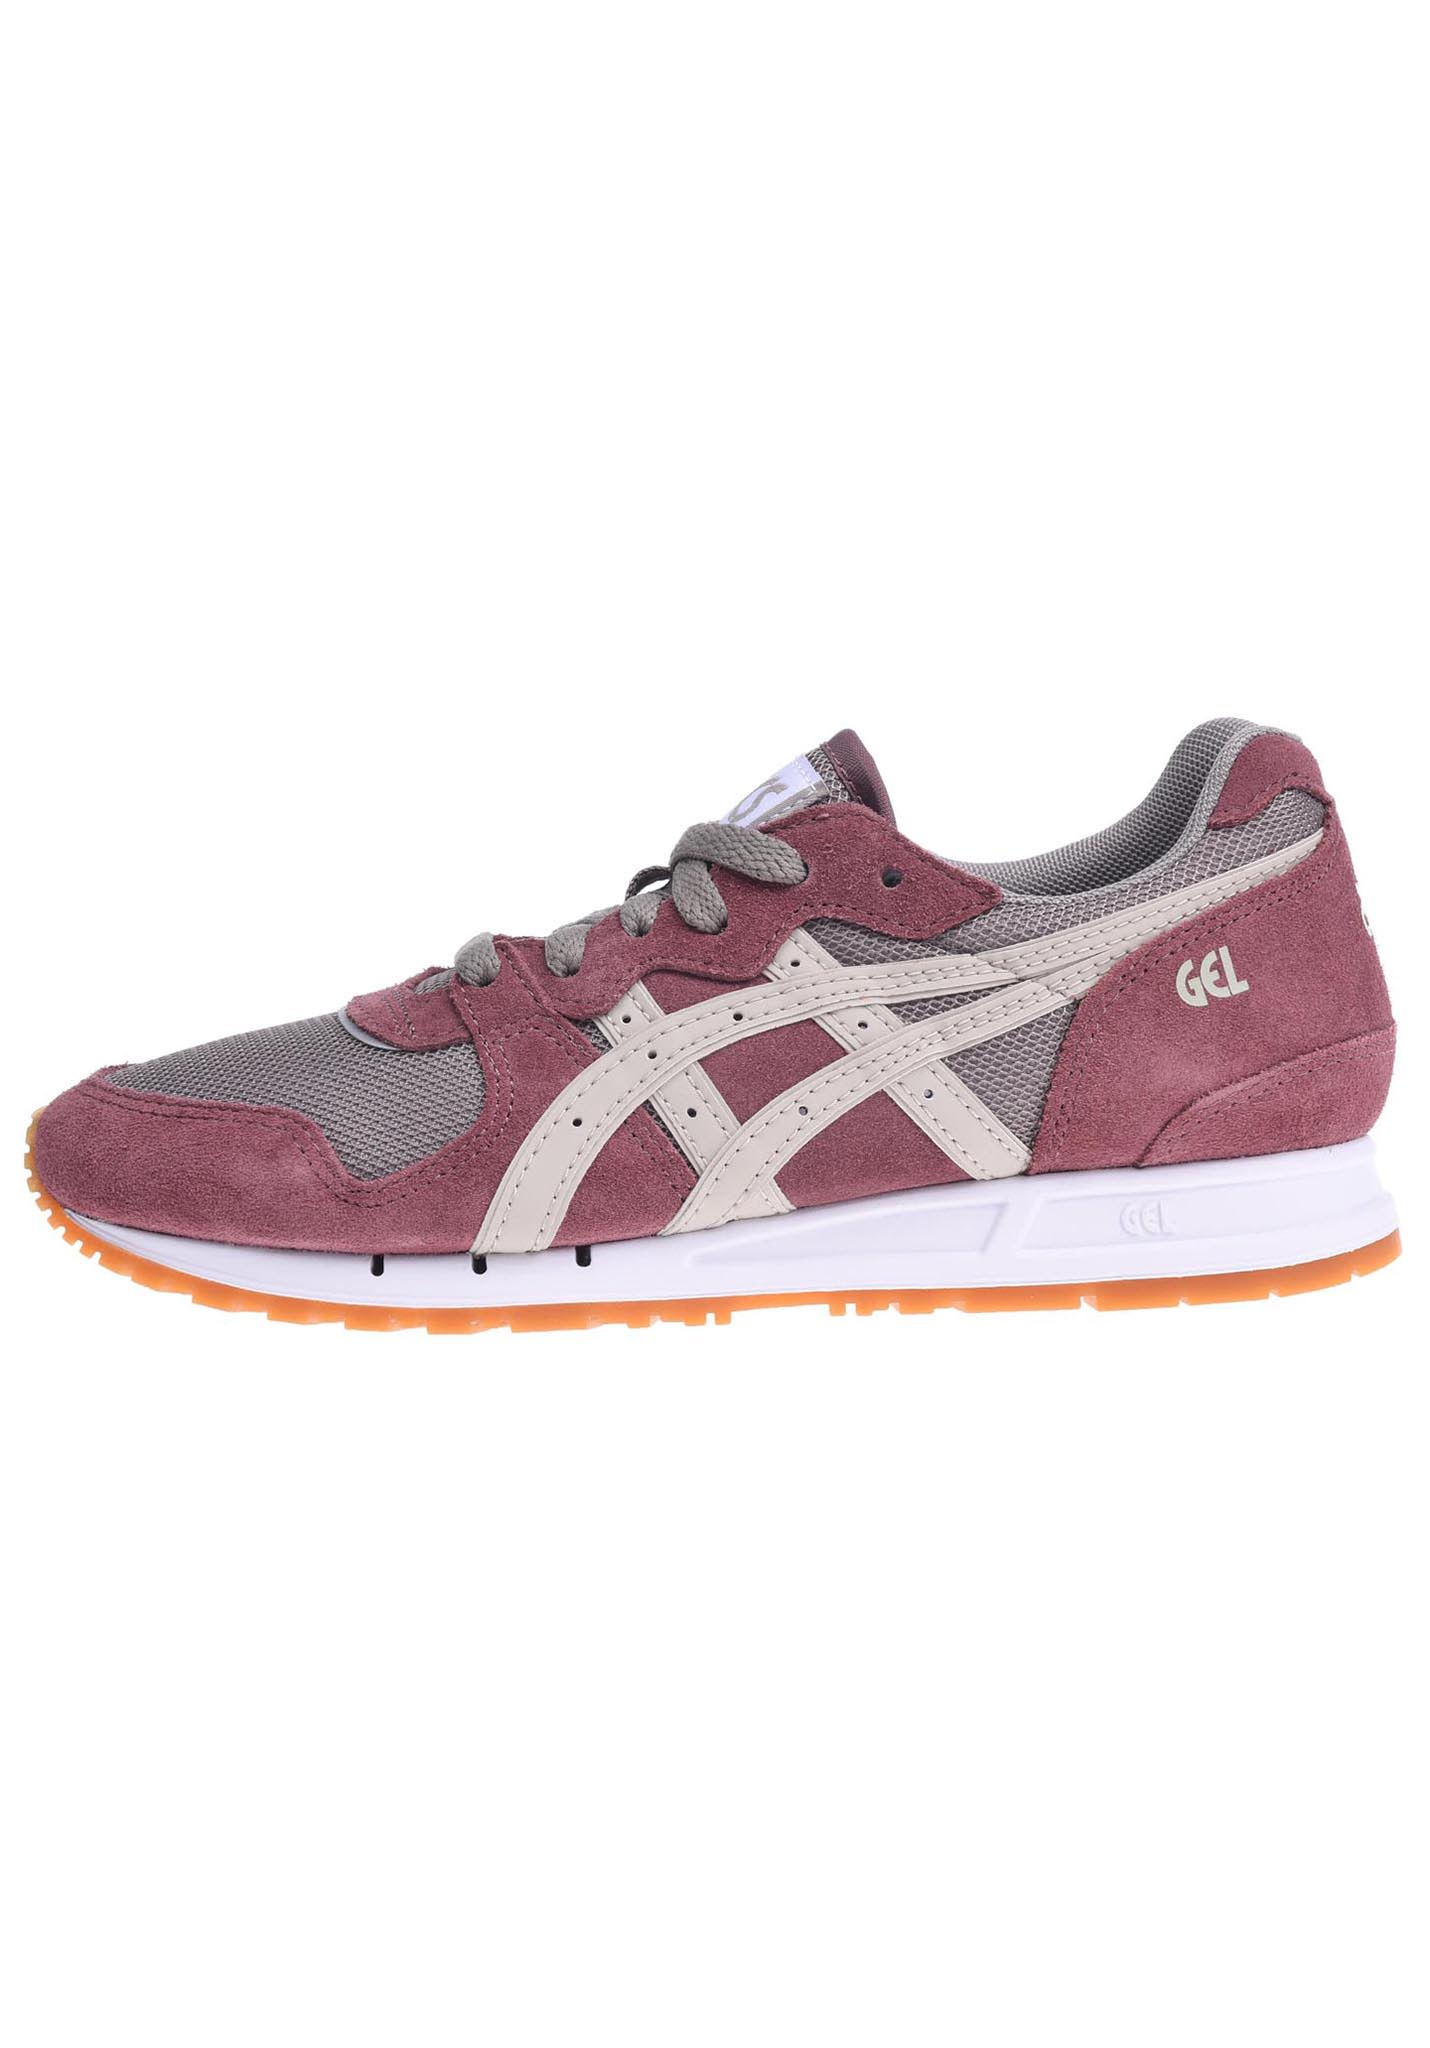 Selling - asics sneakers damen - OFF 79% - Free shipping ...